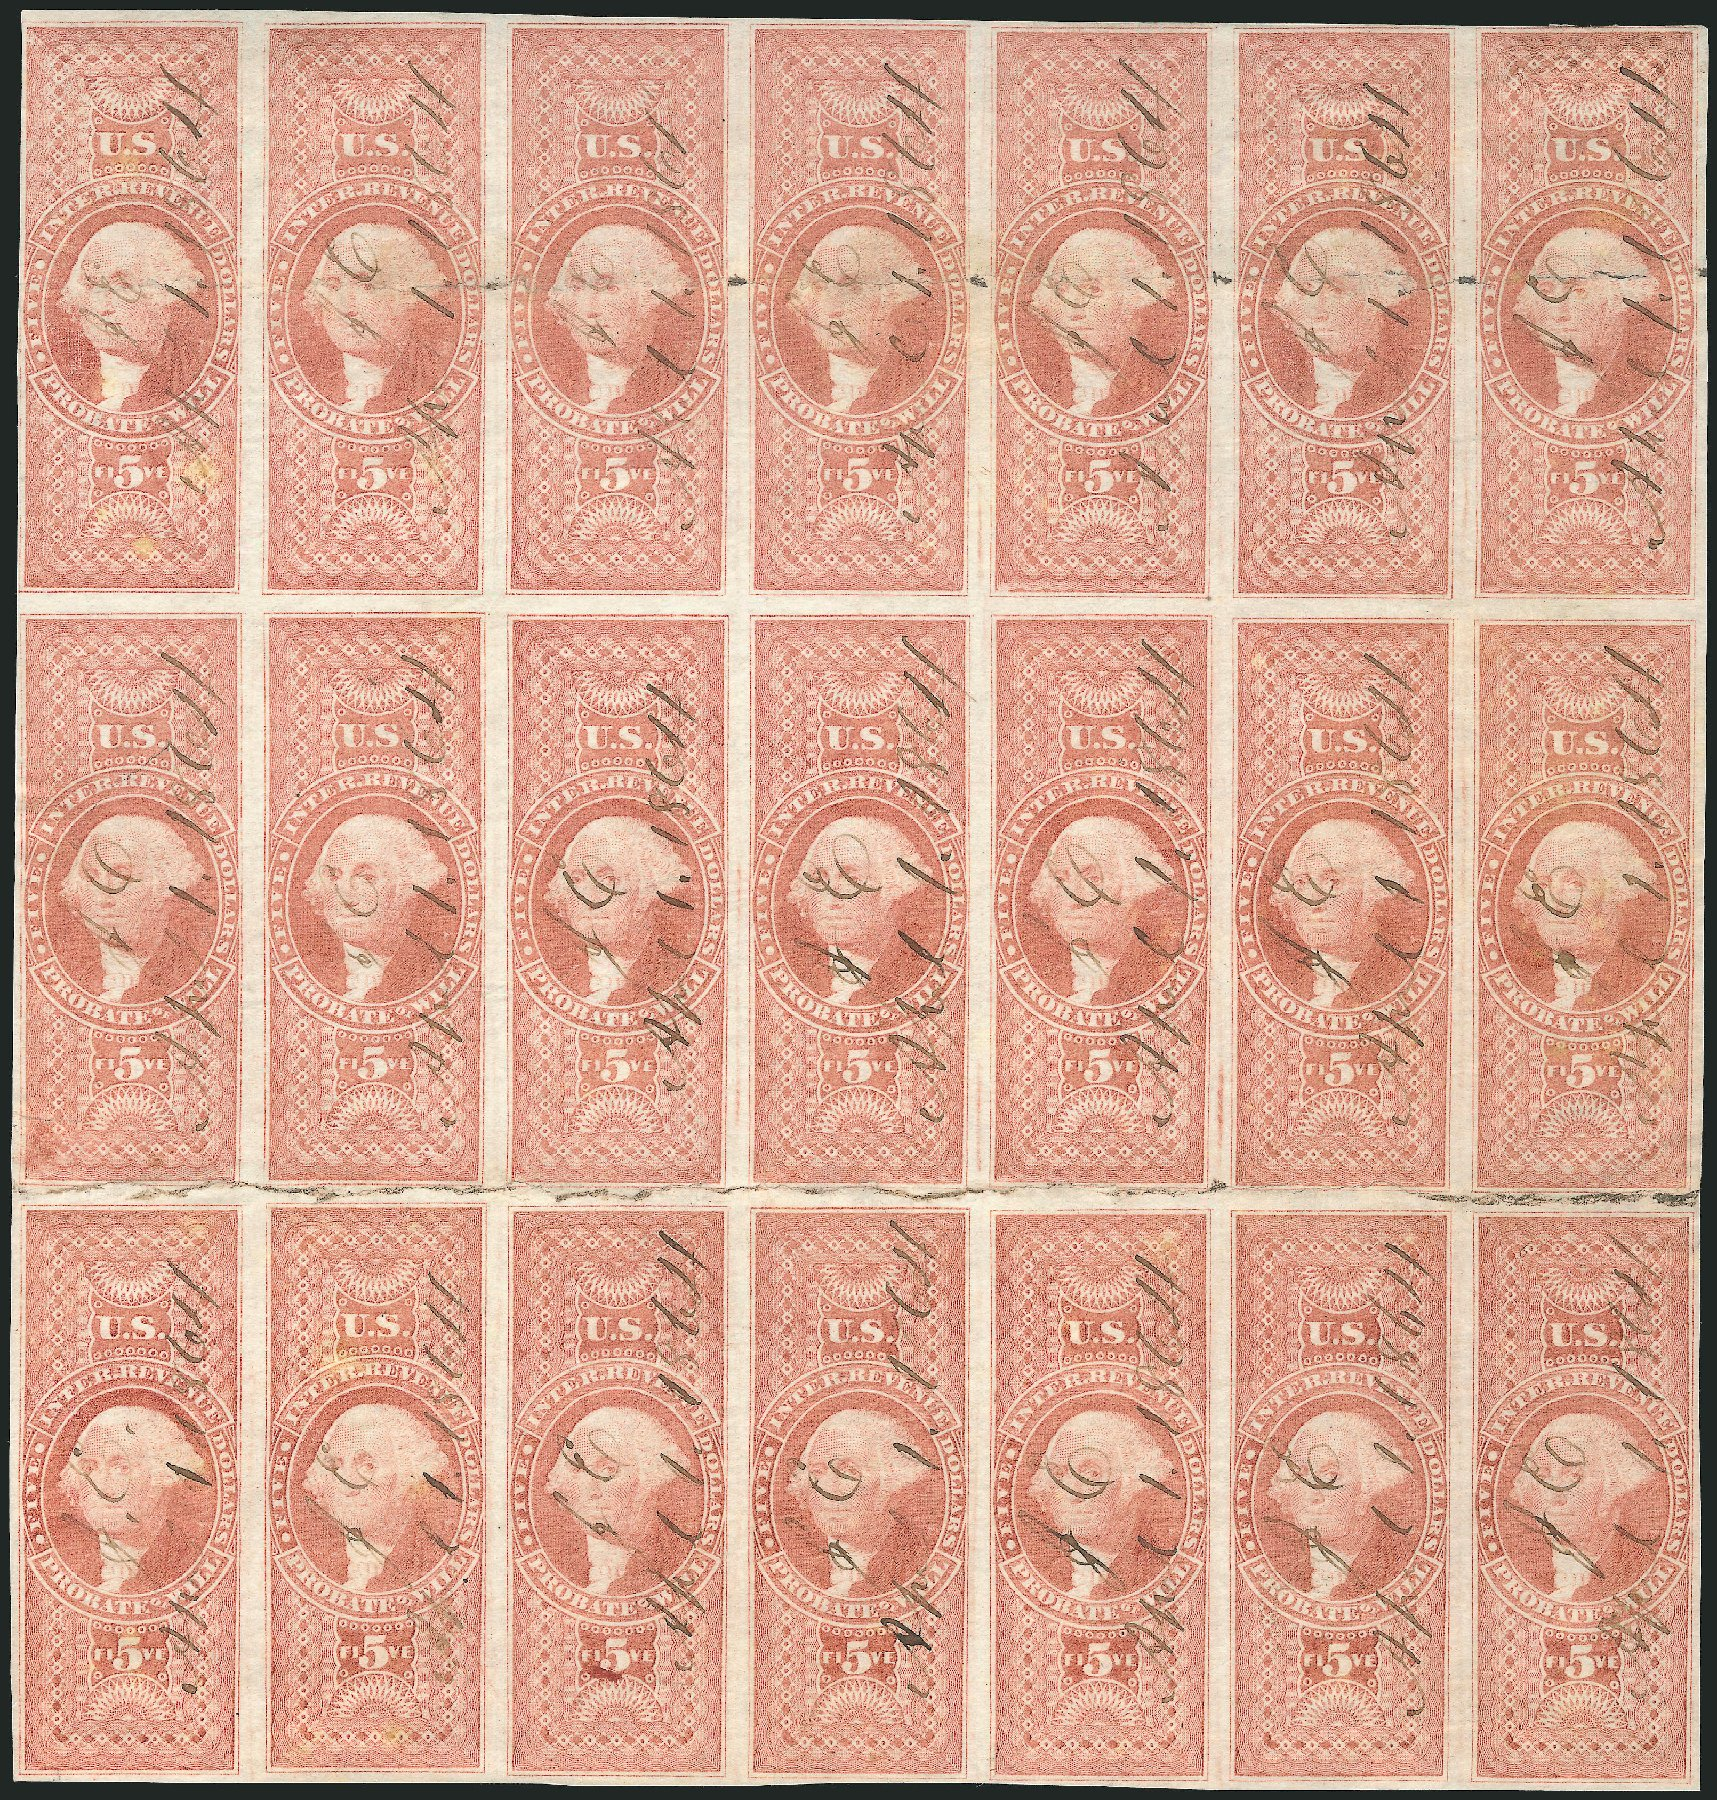 US Stamps Price Scott # R92 - 1862 US$5.00 Revenue Probate of Will. Robert Siegel Auction Galleries, Jun 2015, Sale 1100, Lot 160